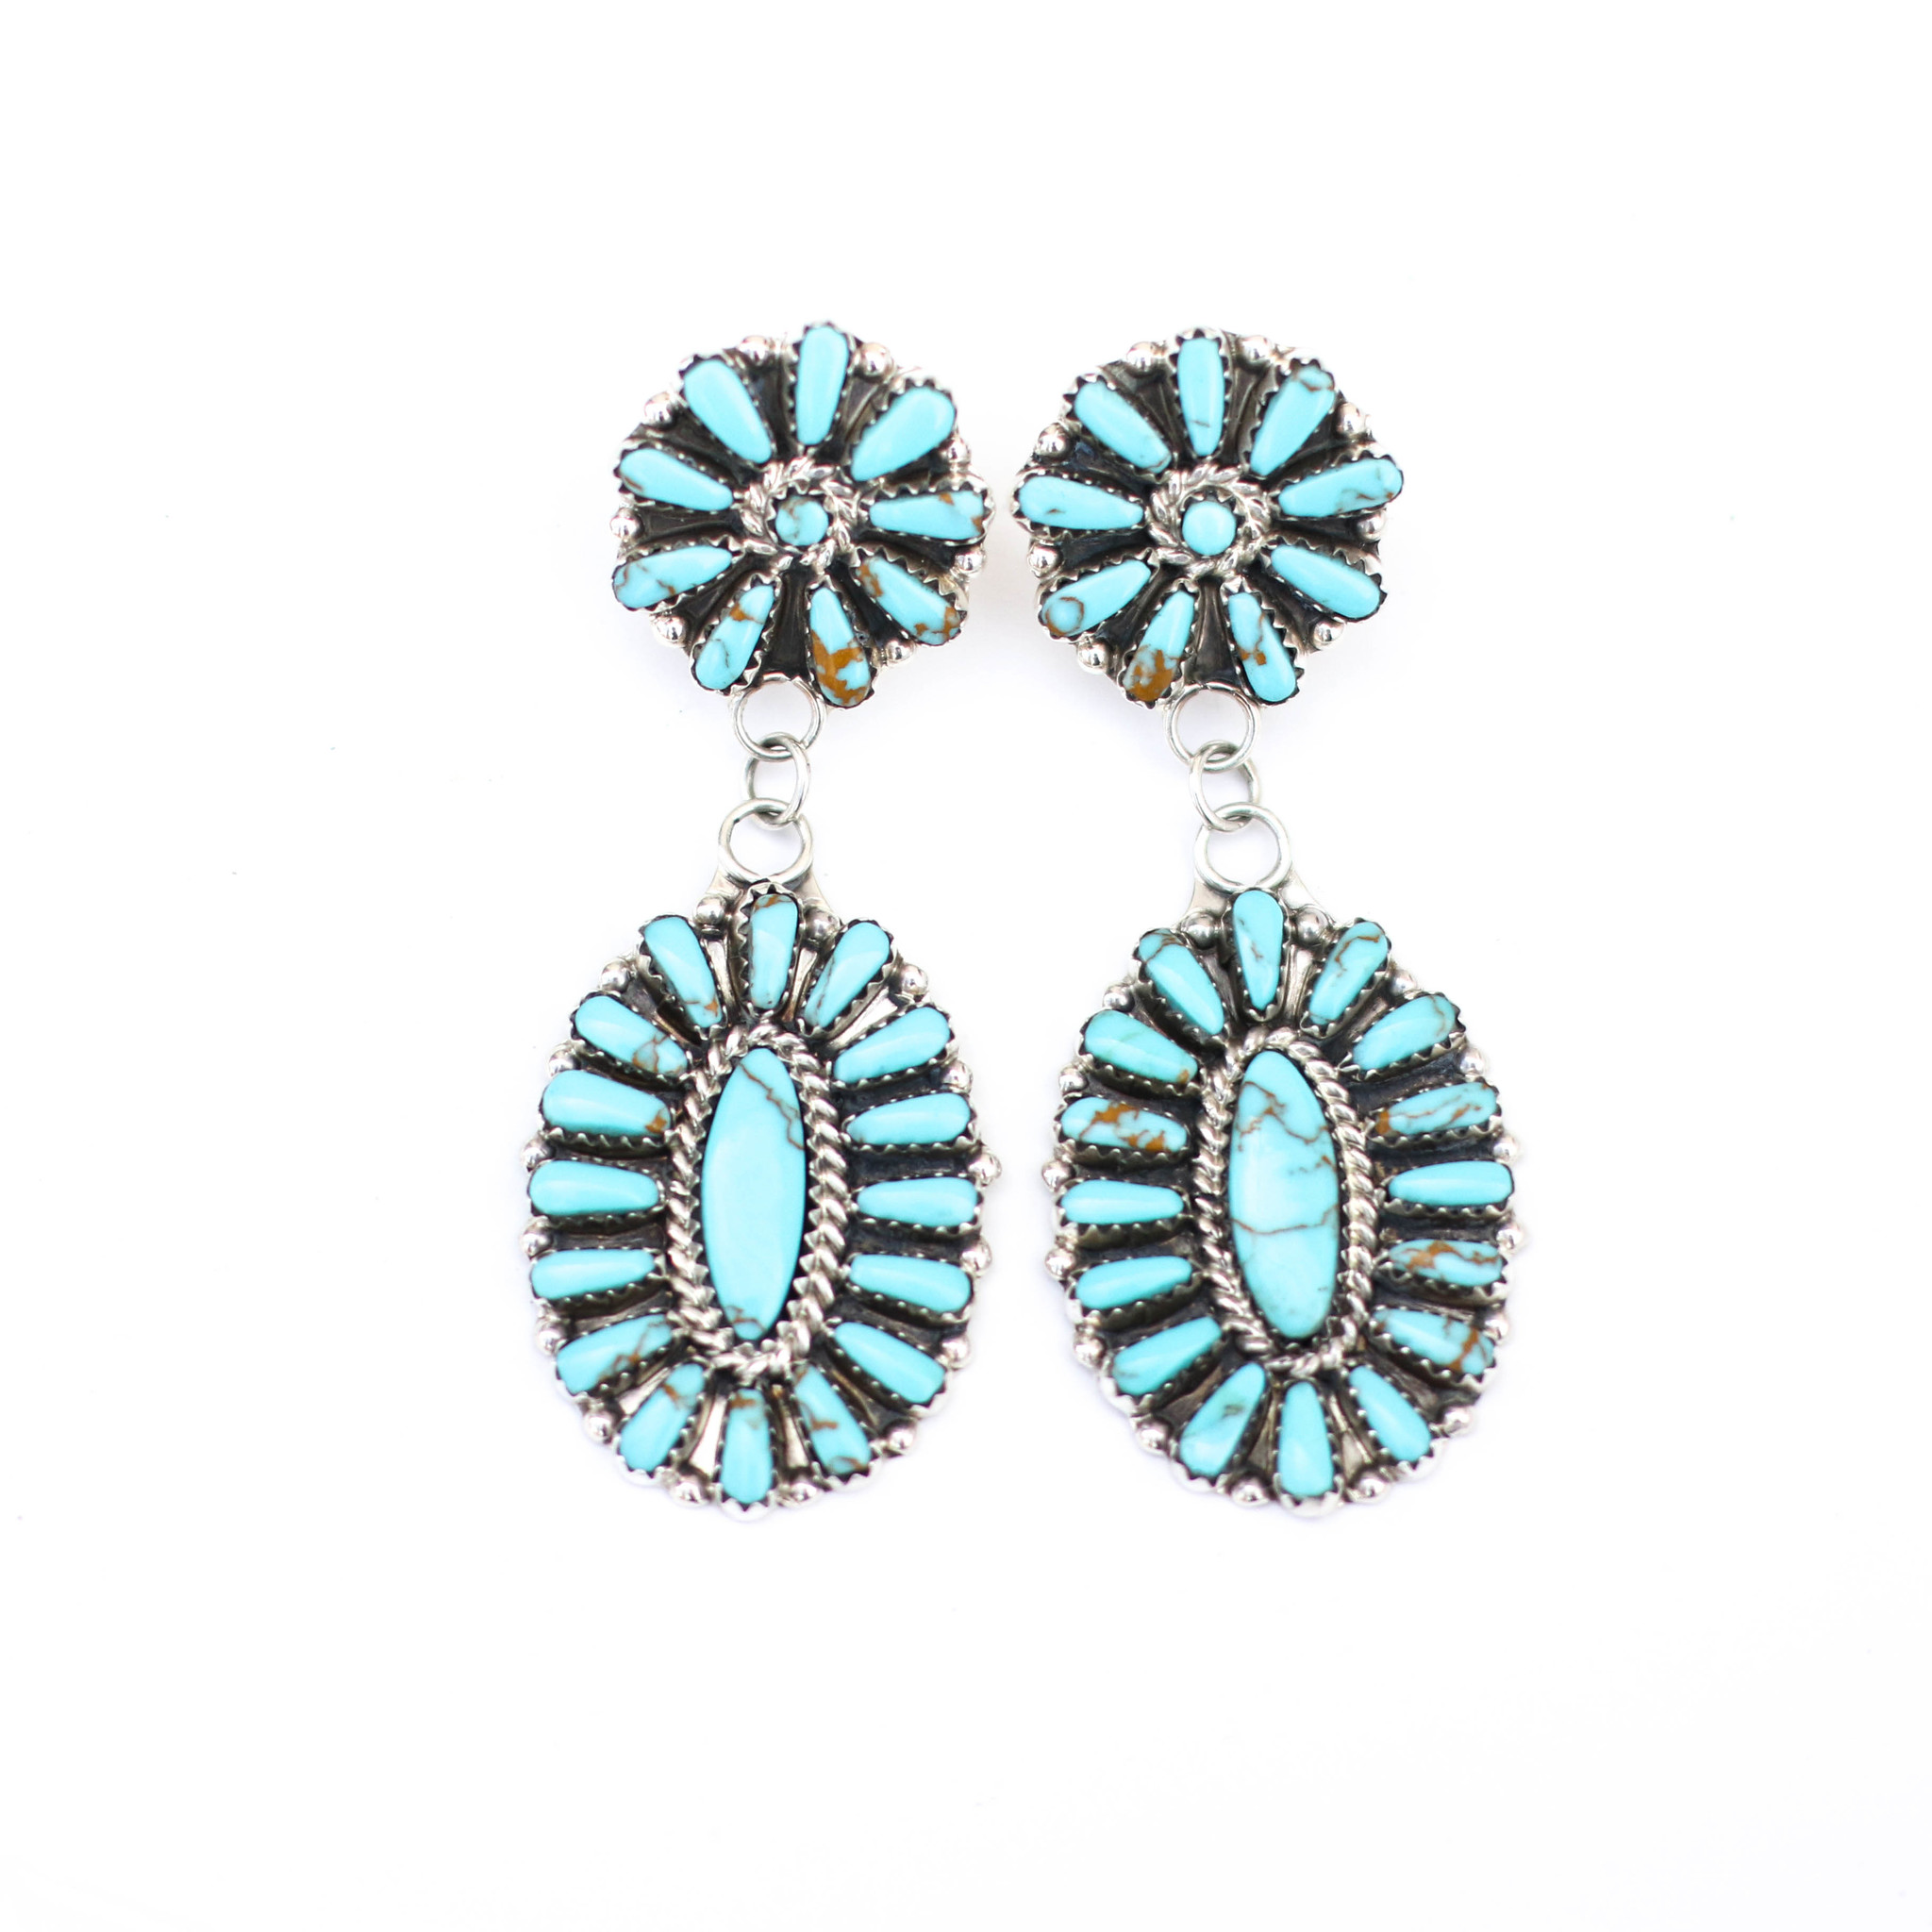 Punchy's The Charlotte Earring